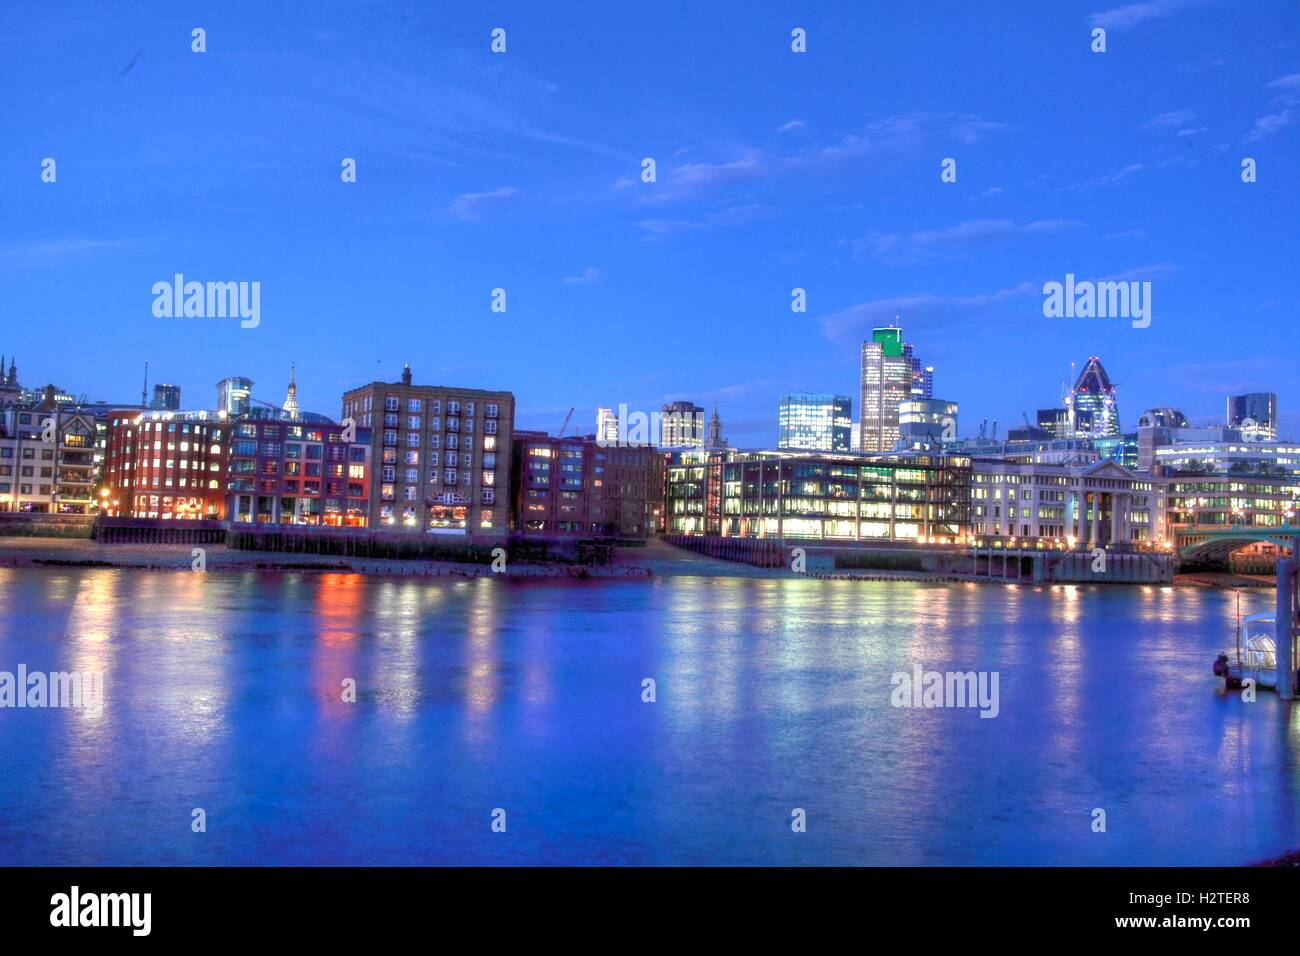 River Thames Panorama, London, England Stock Photo